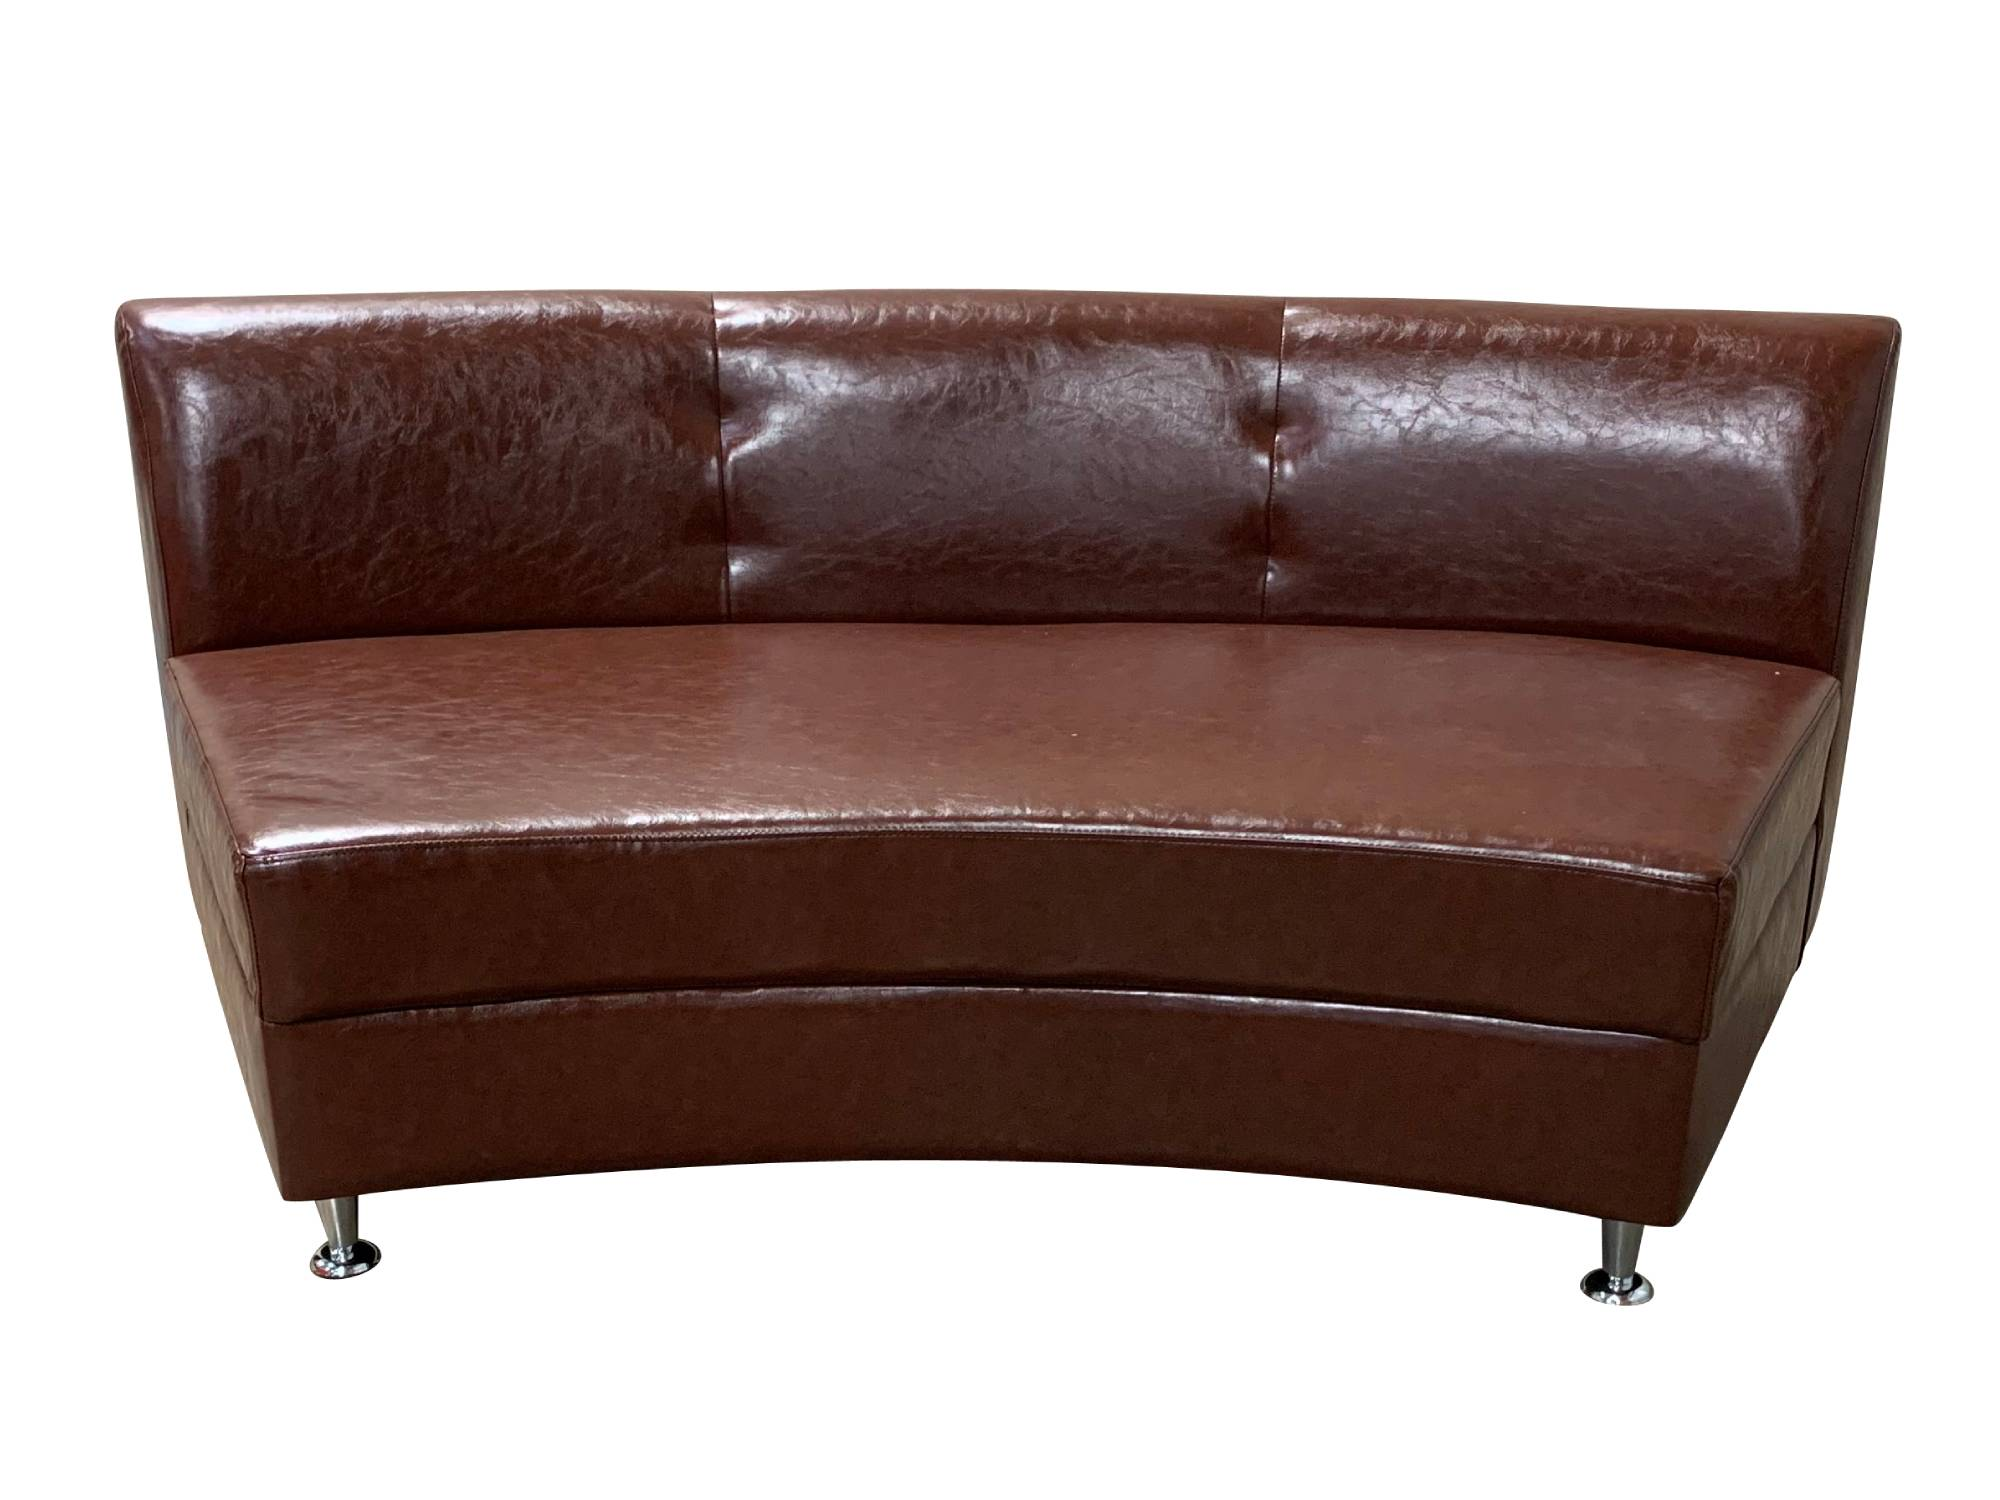 LUXURY ARMLESS SOFA SECTION - BROWN